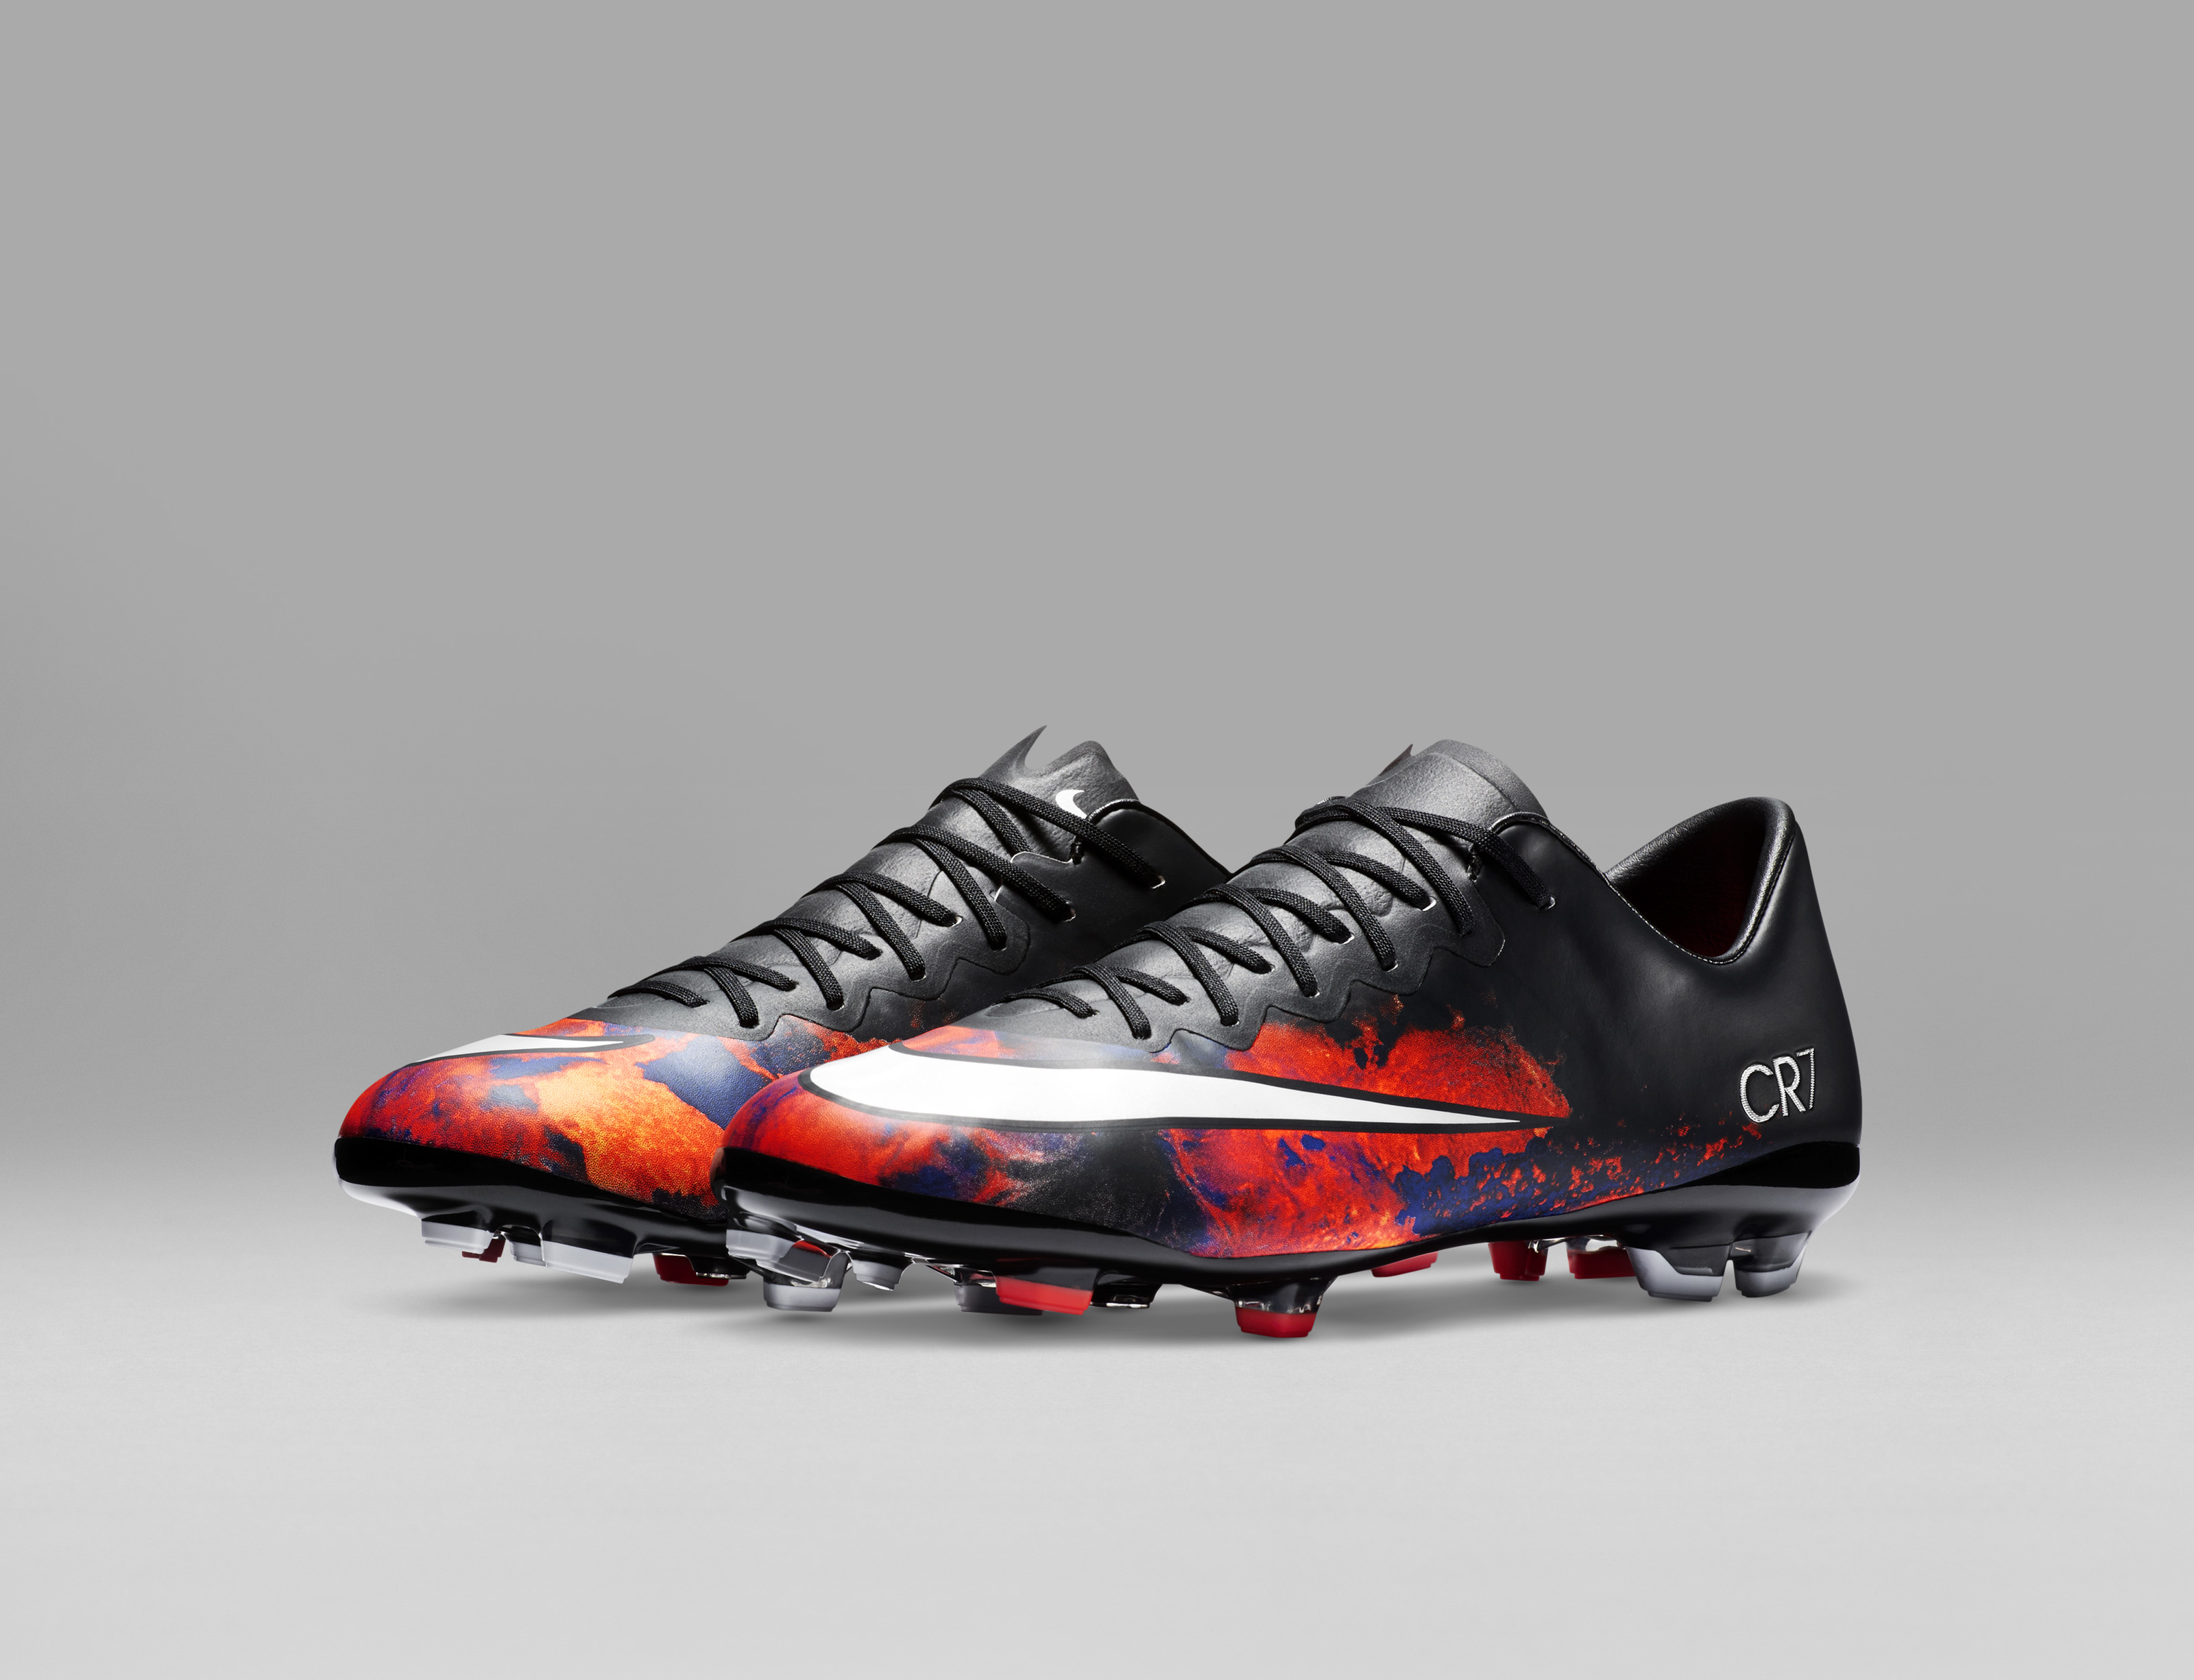 30b8c648a70 Buy 2 OFF ANY cristiano ronaldo cleats collection CASE AND GET 70% OFF!